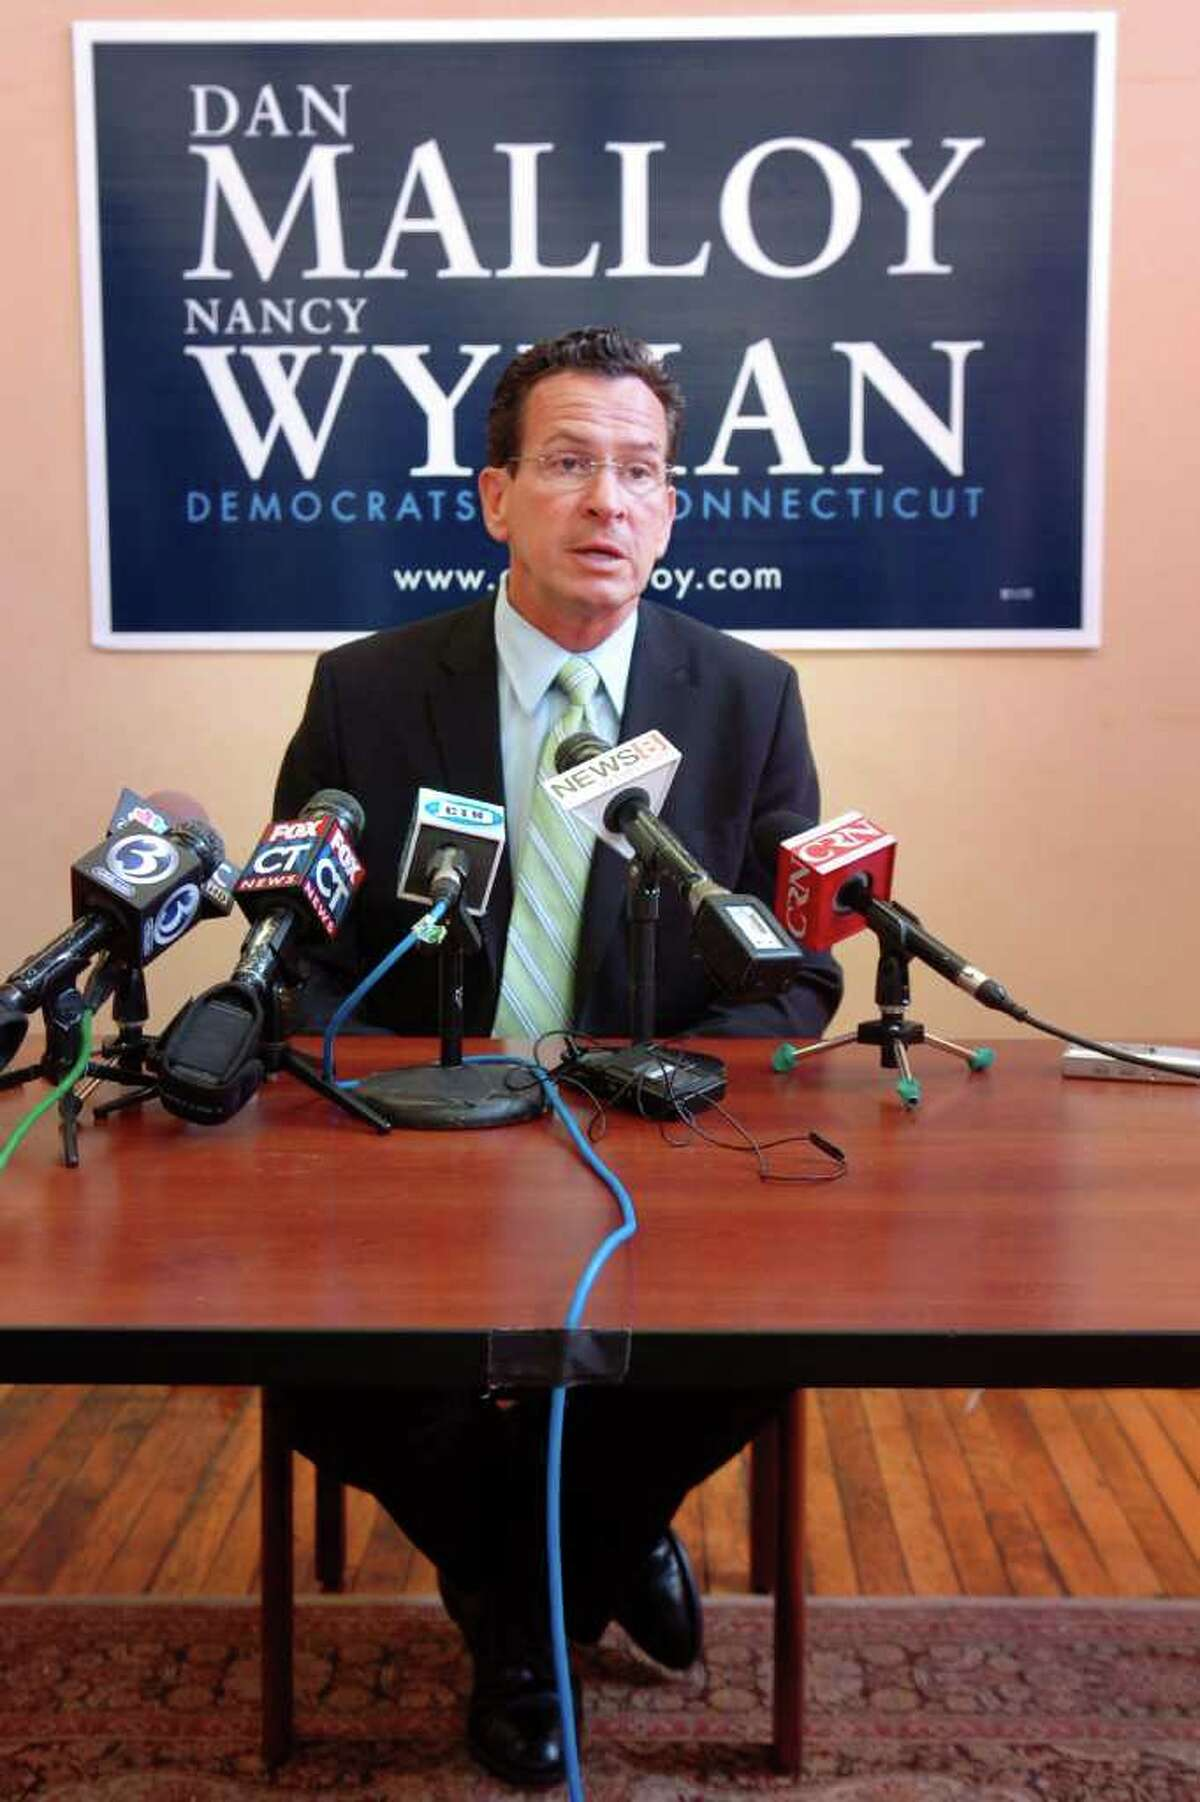 Democratic candidate for Governor Dan Malloy speaks during a press conference at his campaign headquarters, Hartford, Conn. Wed. Aug. 11th, 2010.